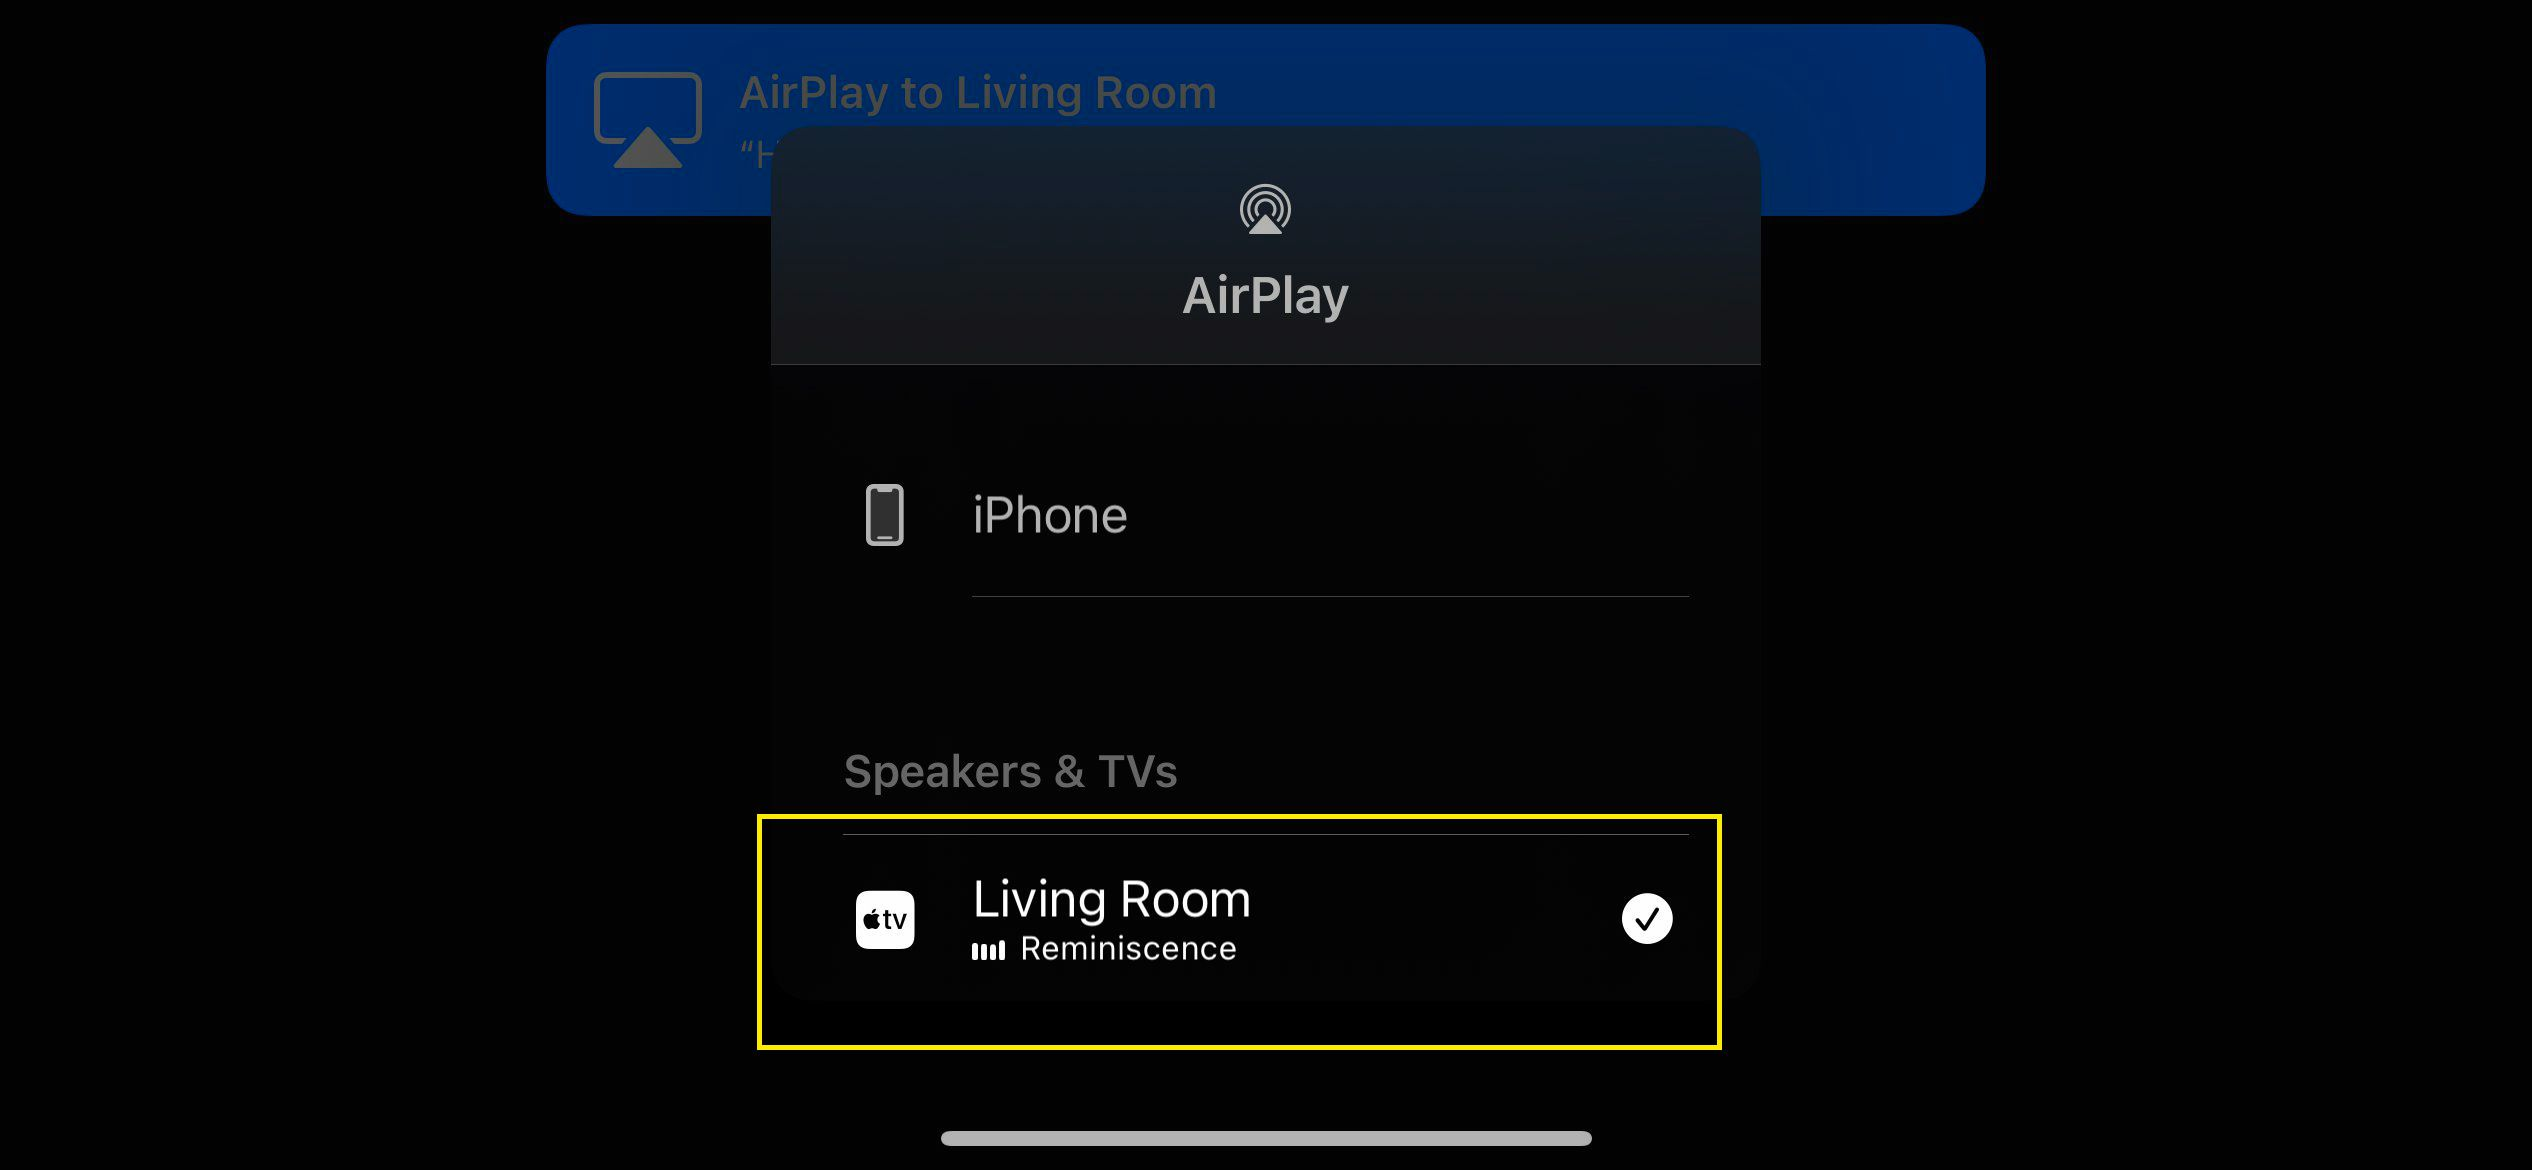 AirPlay menu in a video app showing an Apple TV selected